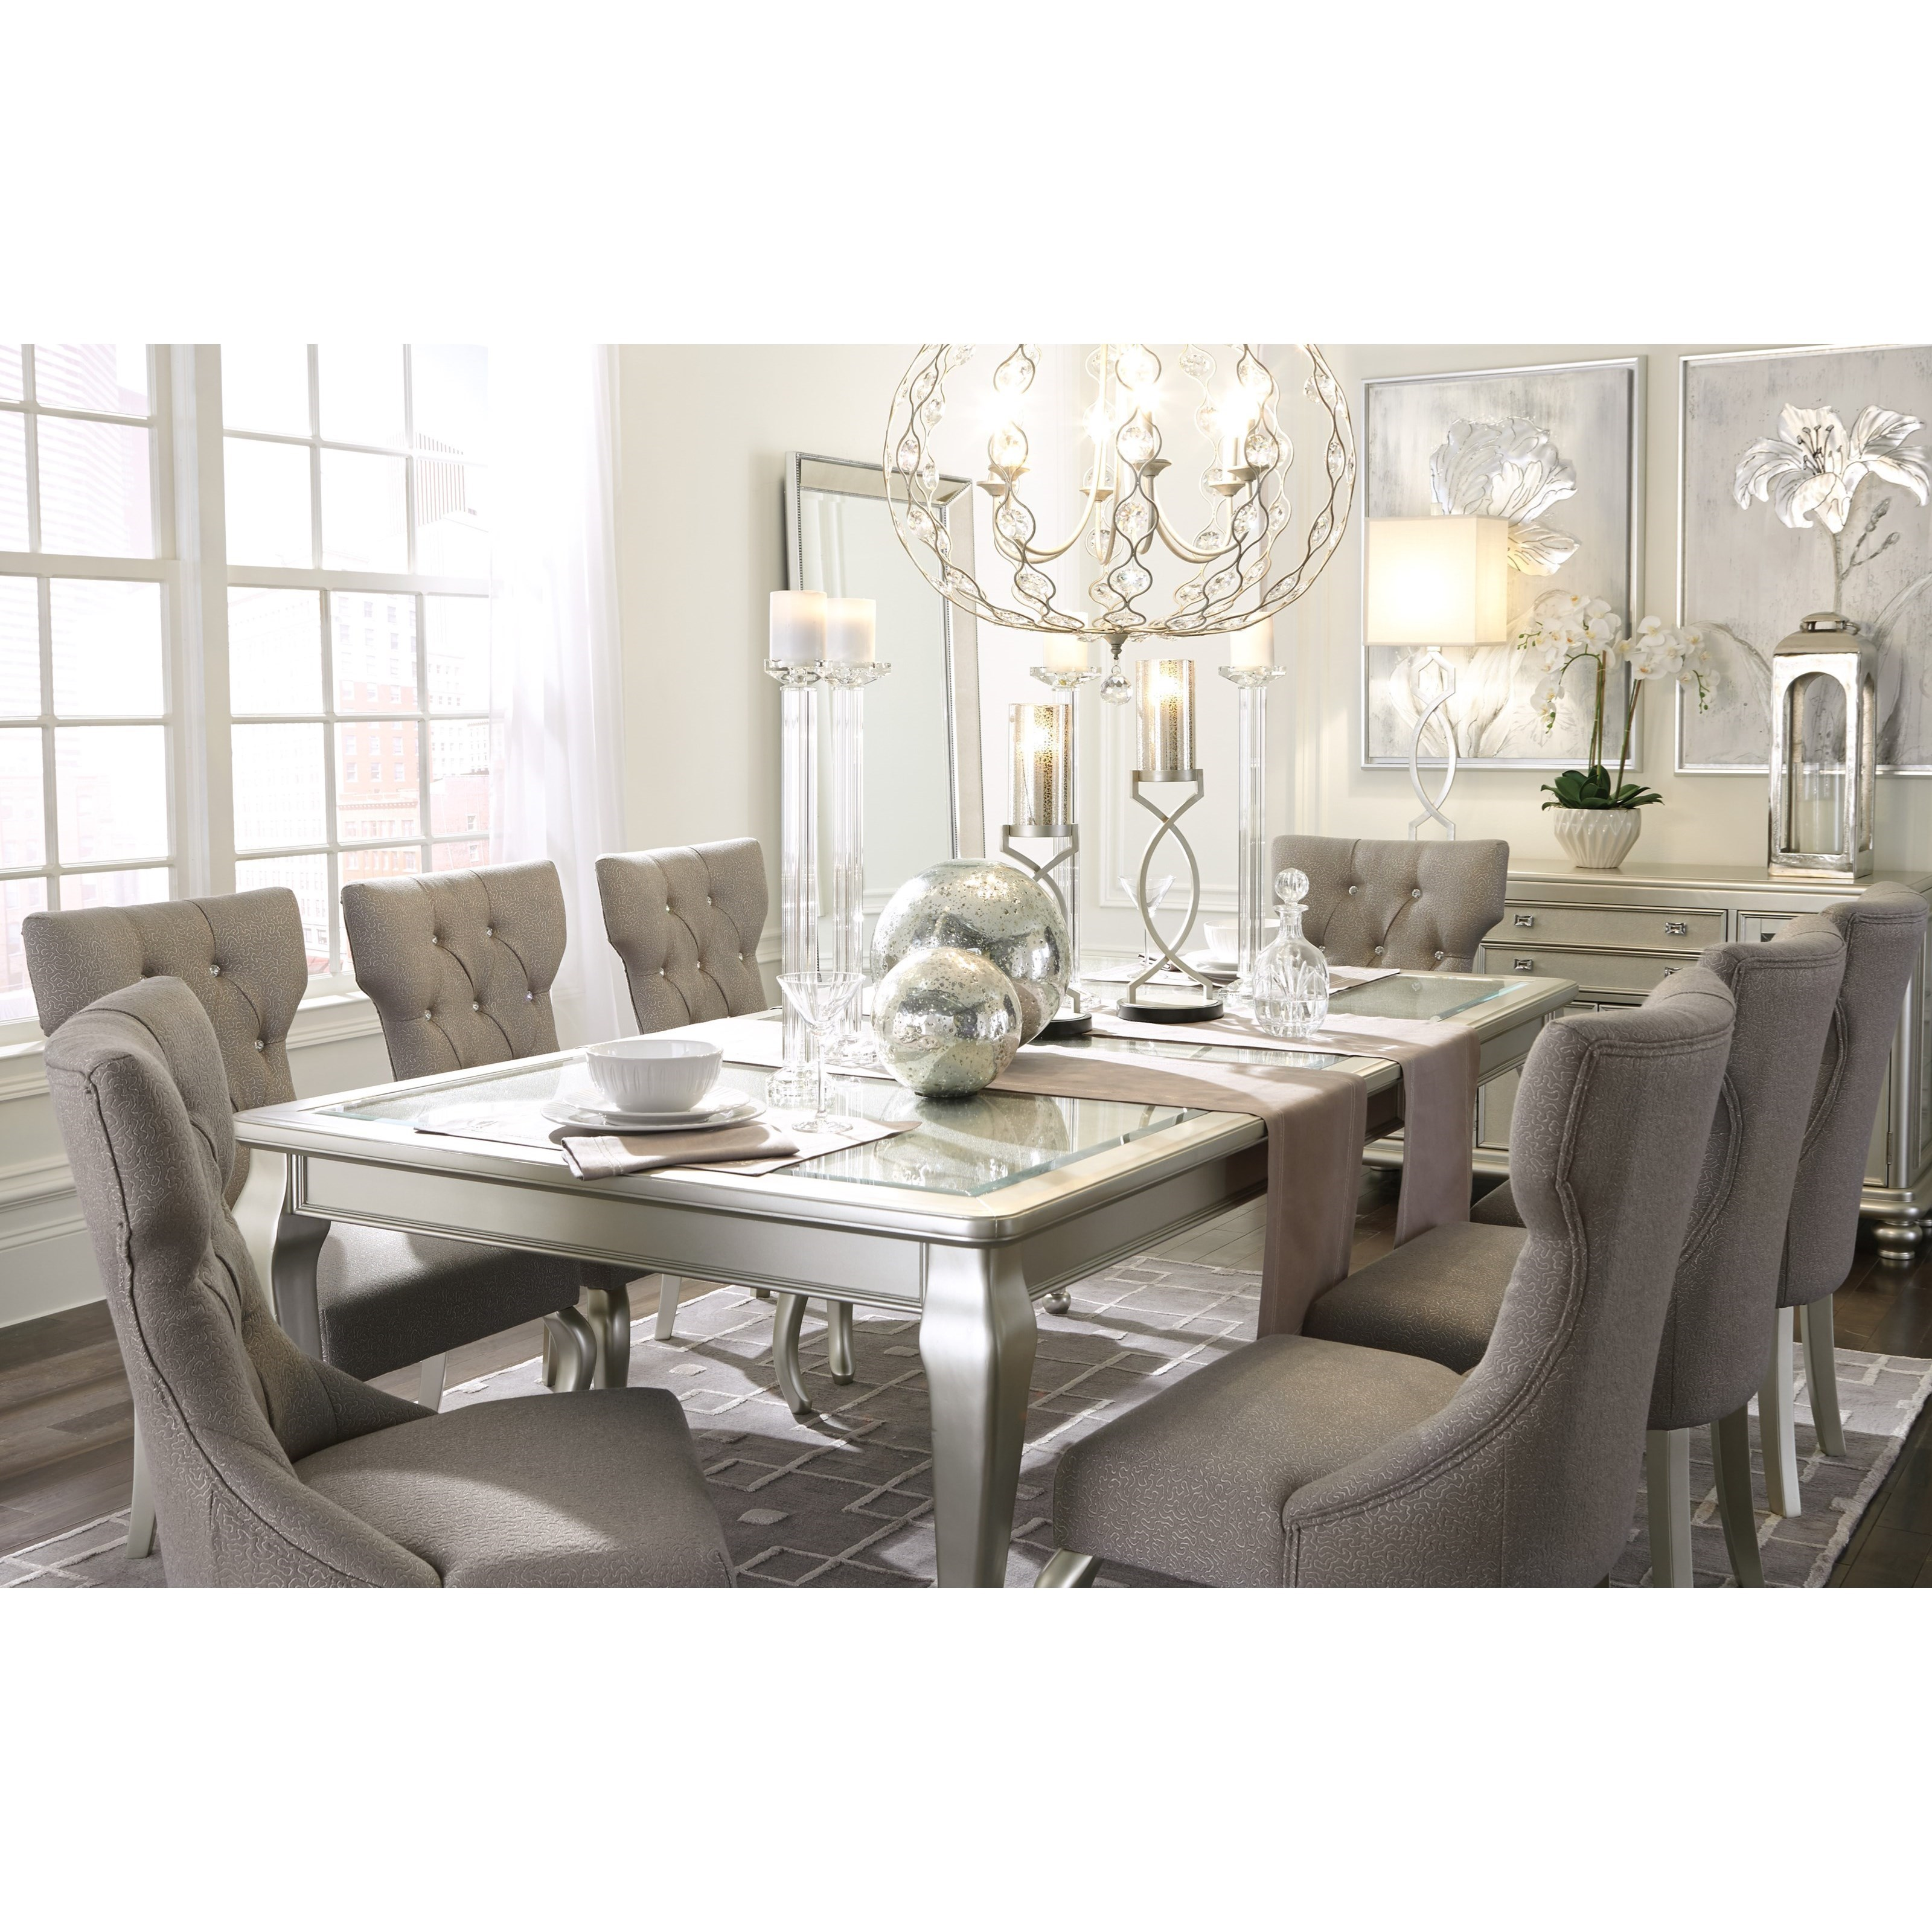 Signature Design By Ashley Coralayne 9 Piece Rectangular Dining Room Extension Table Set Royal Furniture Dining 7 Or More Piece Sets